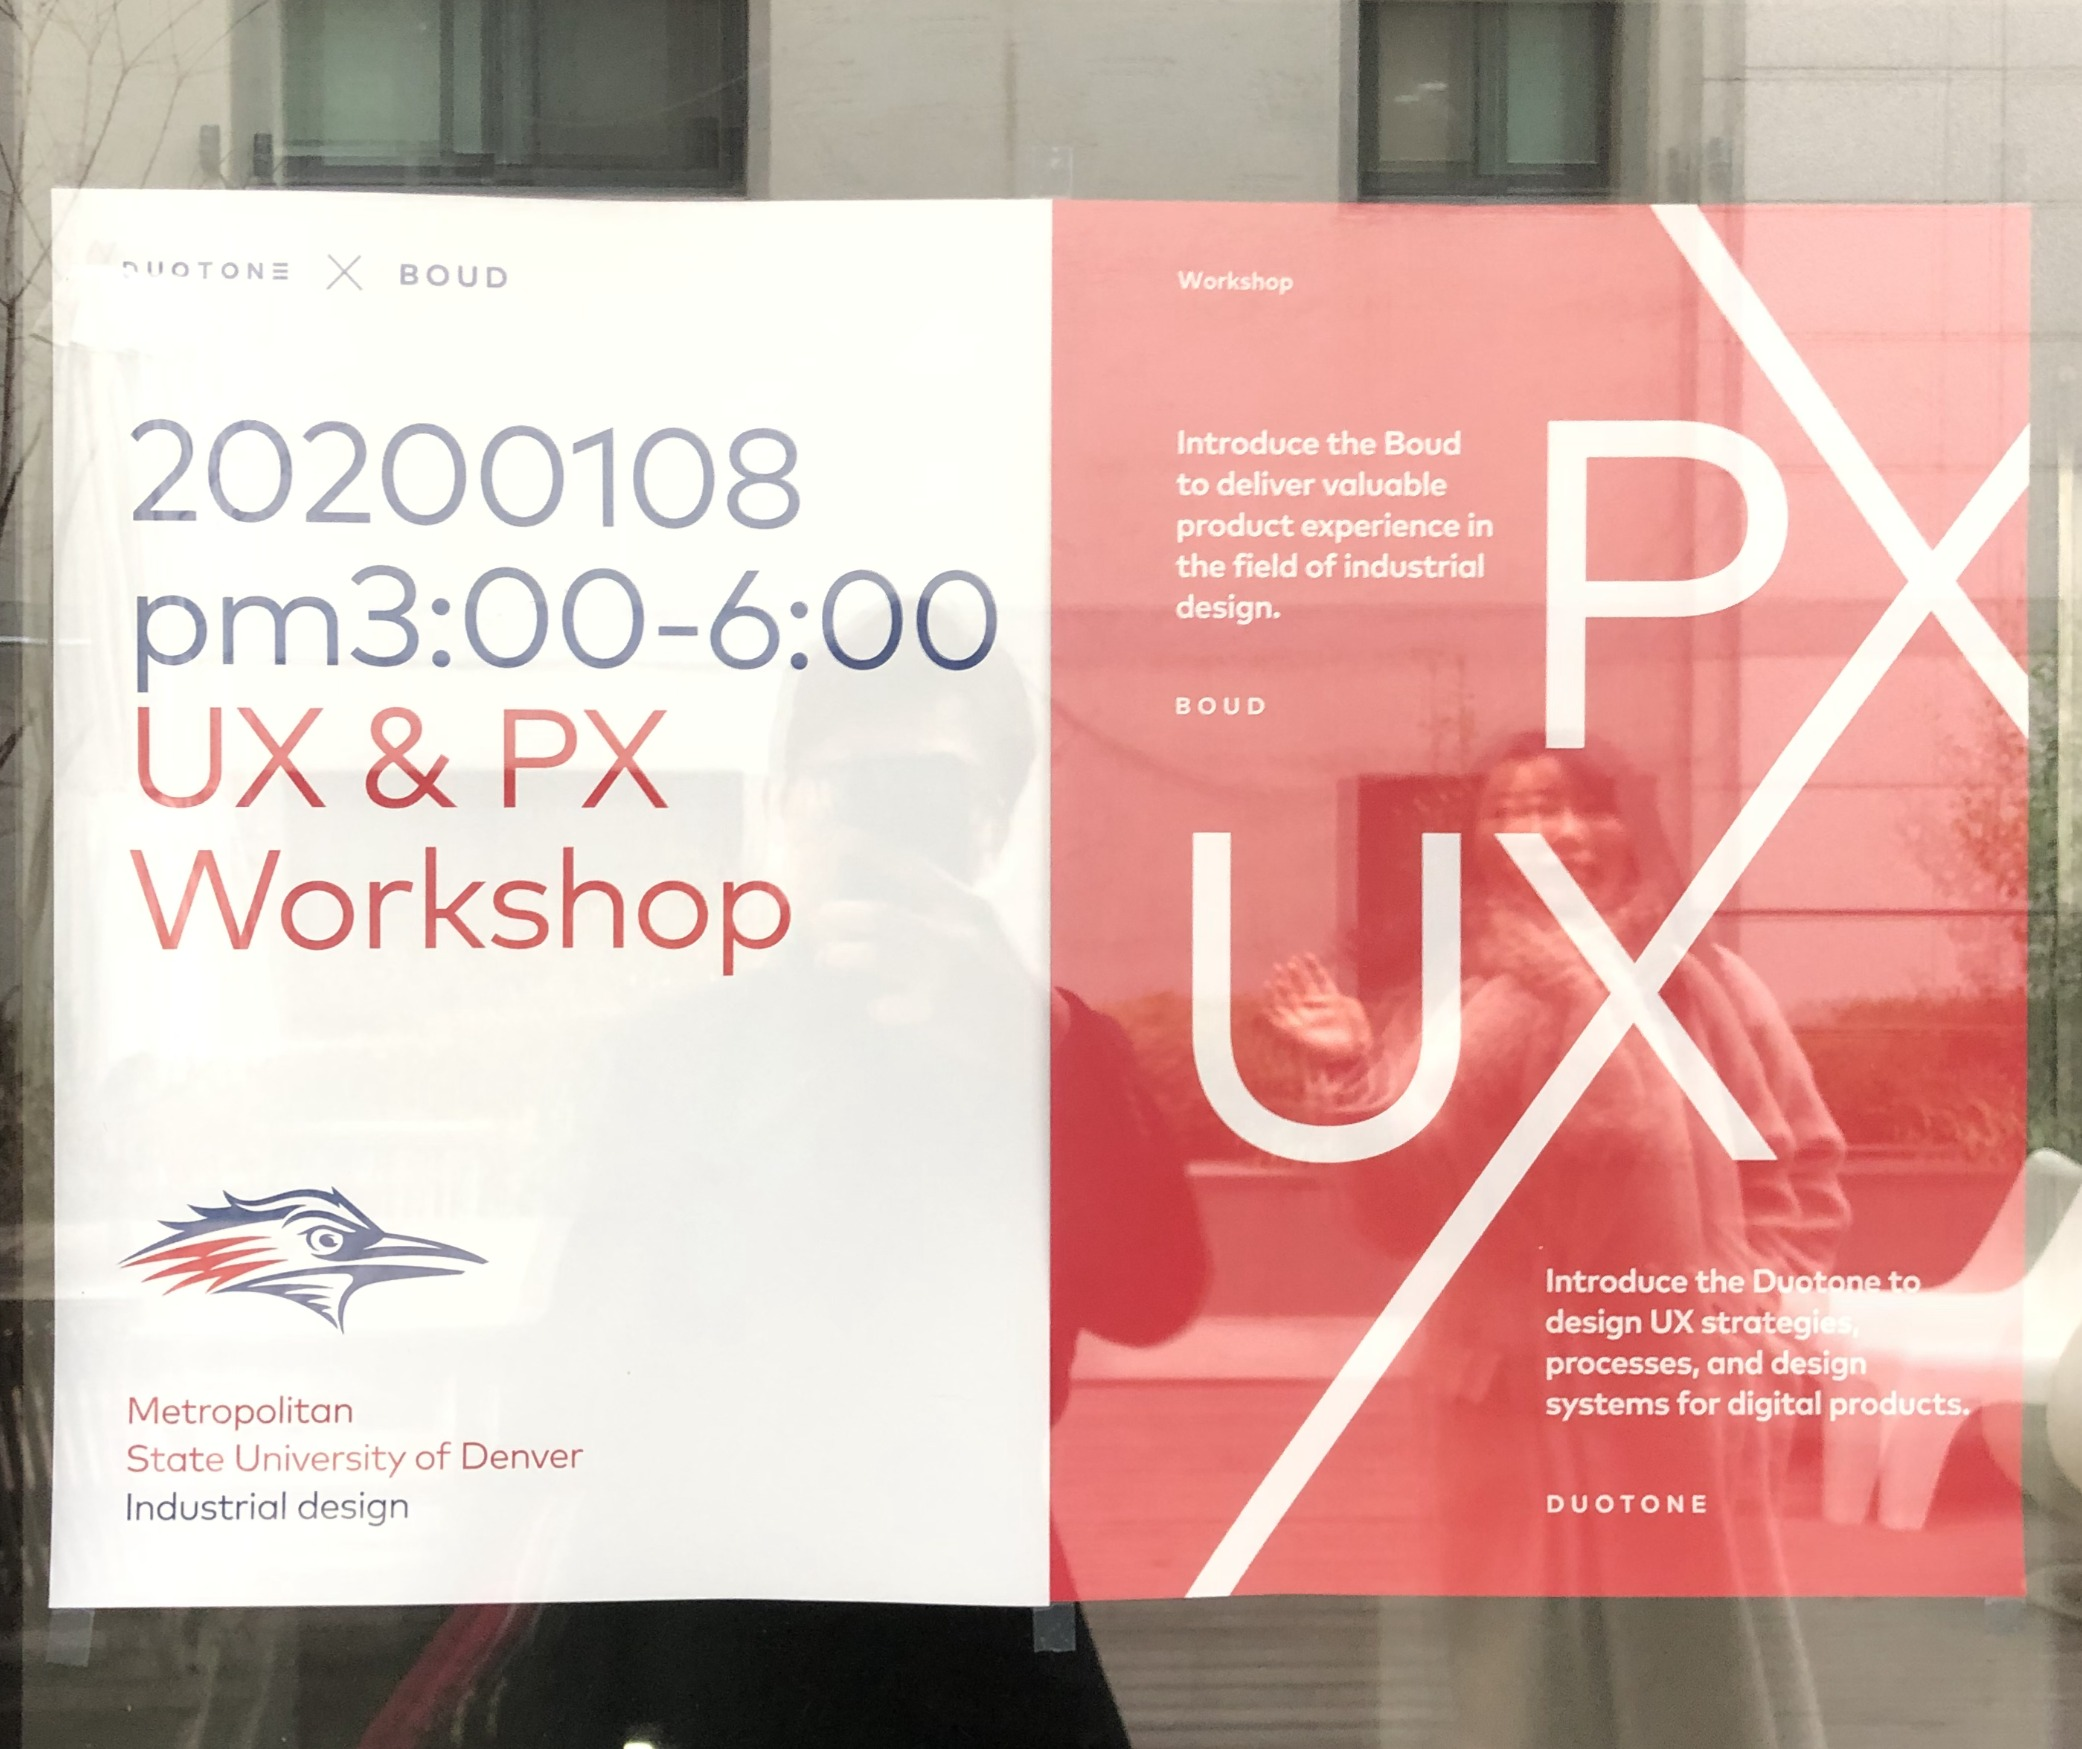 UX / PX workshop